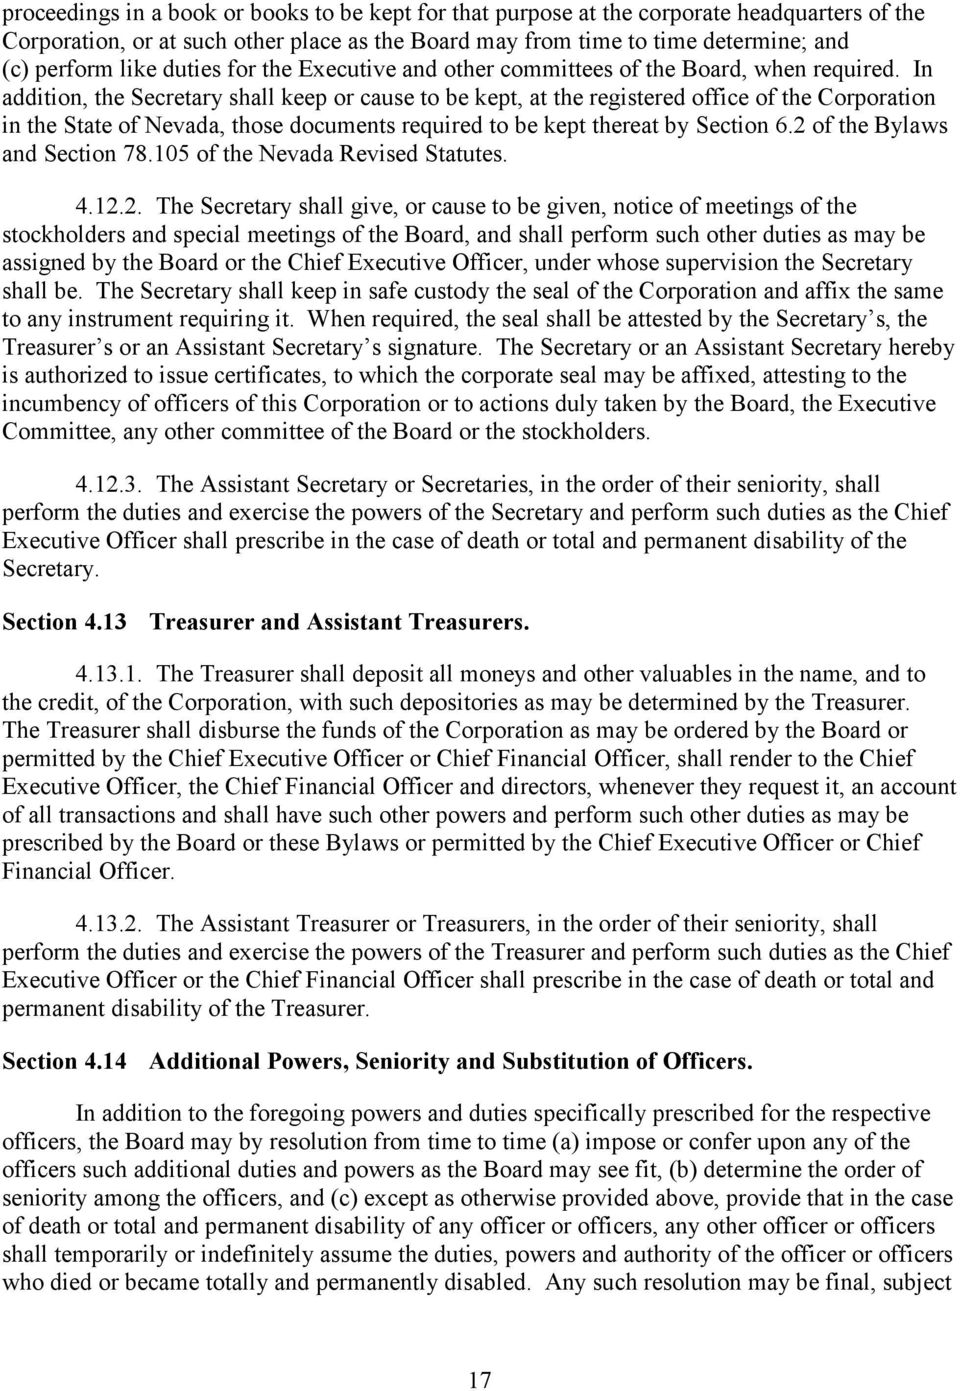 In addition, the Secretary shall keep or cause to be kept, at the registered office of the Corporation in the State of Nevada, those documents required to be kept thereat by Section 6.